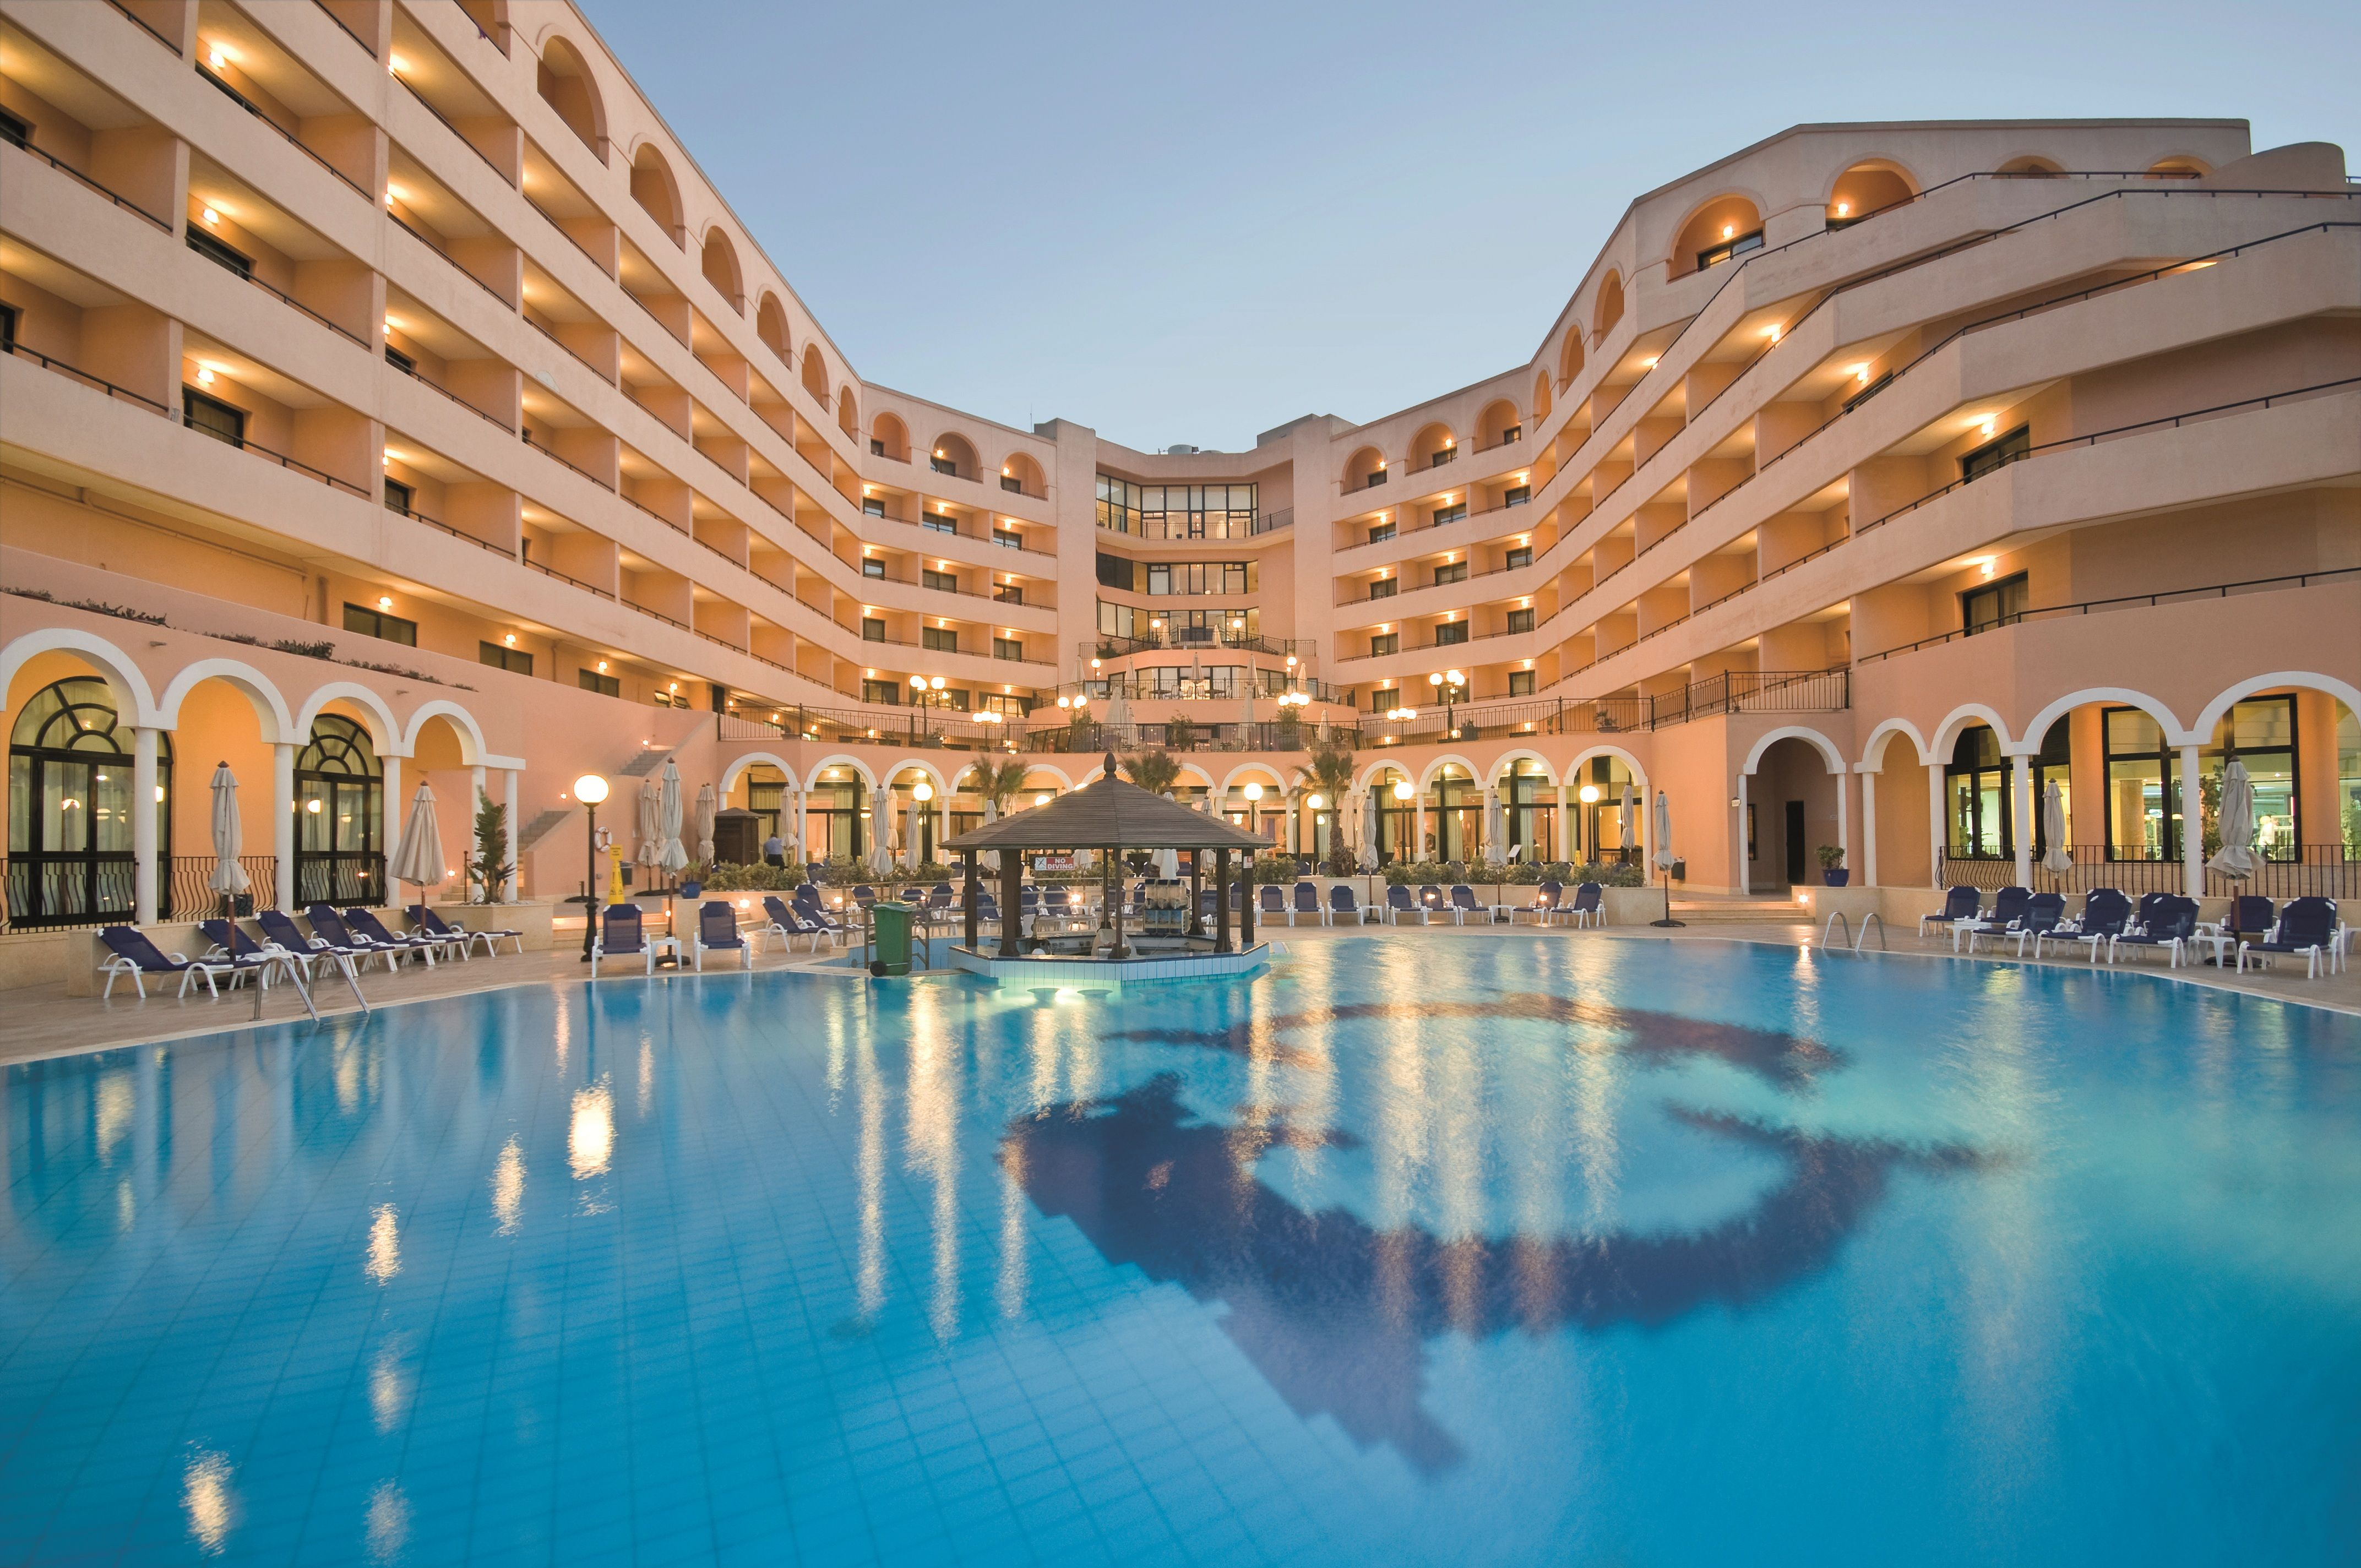 Posh hotels google search posh hotels pinterest hotel pool cheapest hotel rates and for Agus hotel swimming pool rates